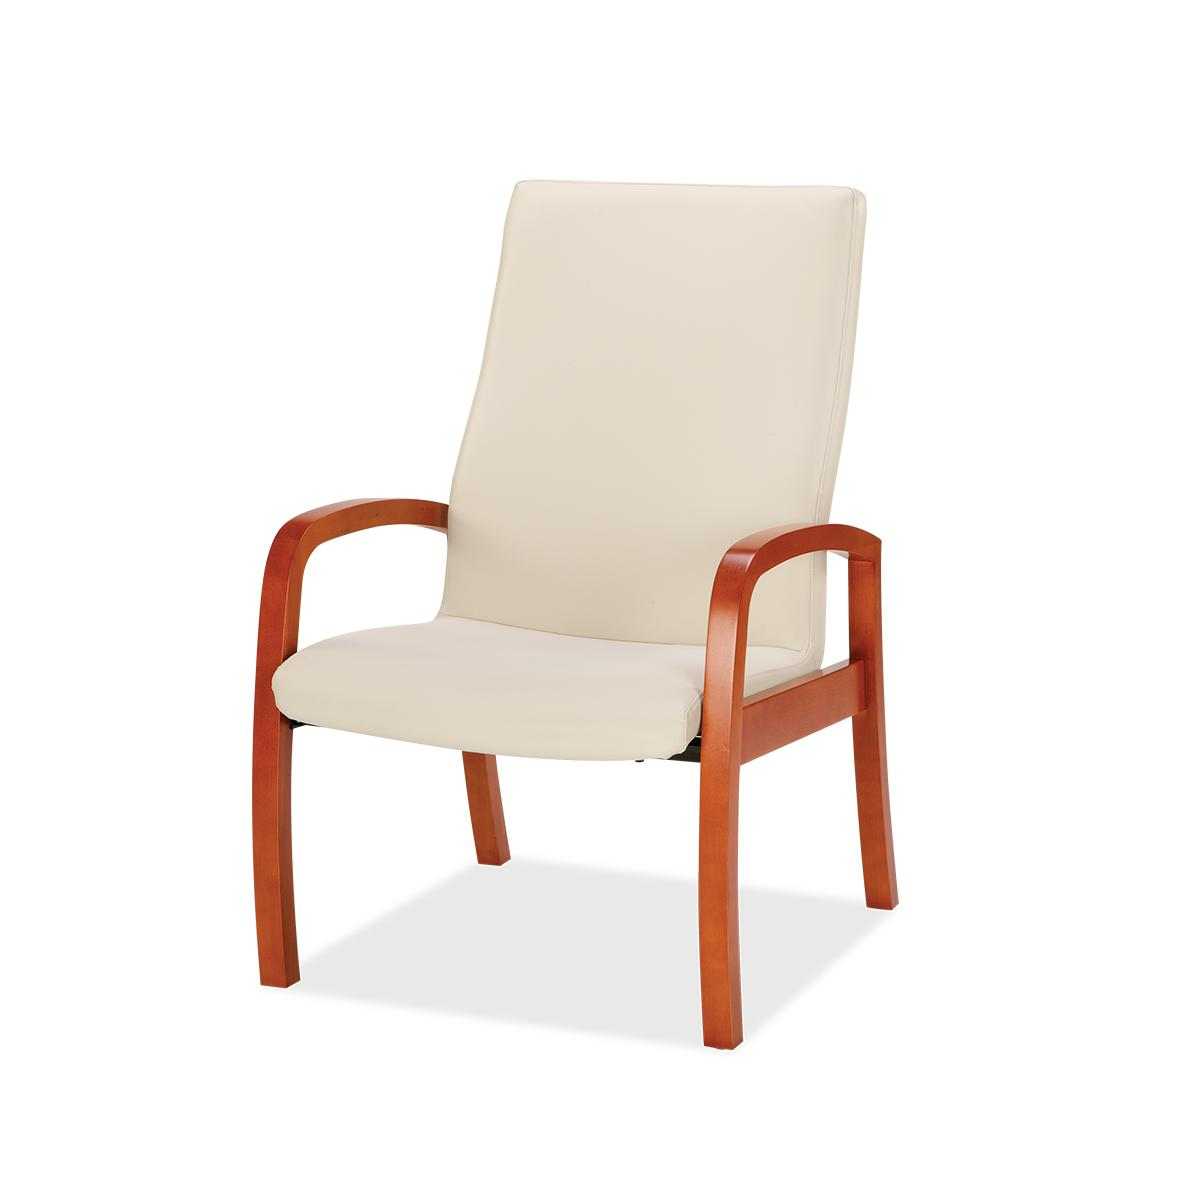 Brio highback chair, white, 3/4 view